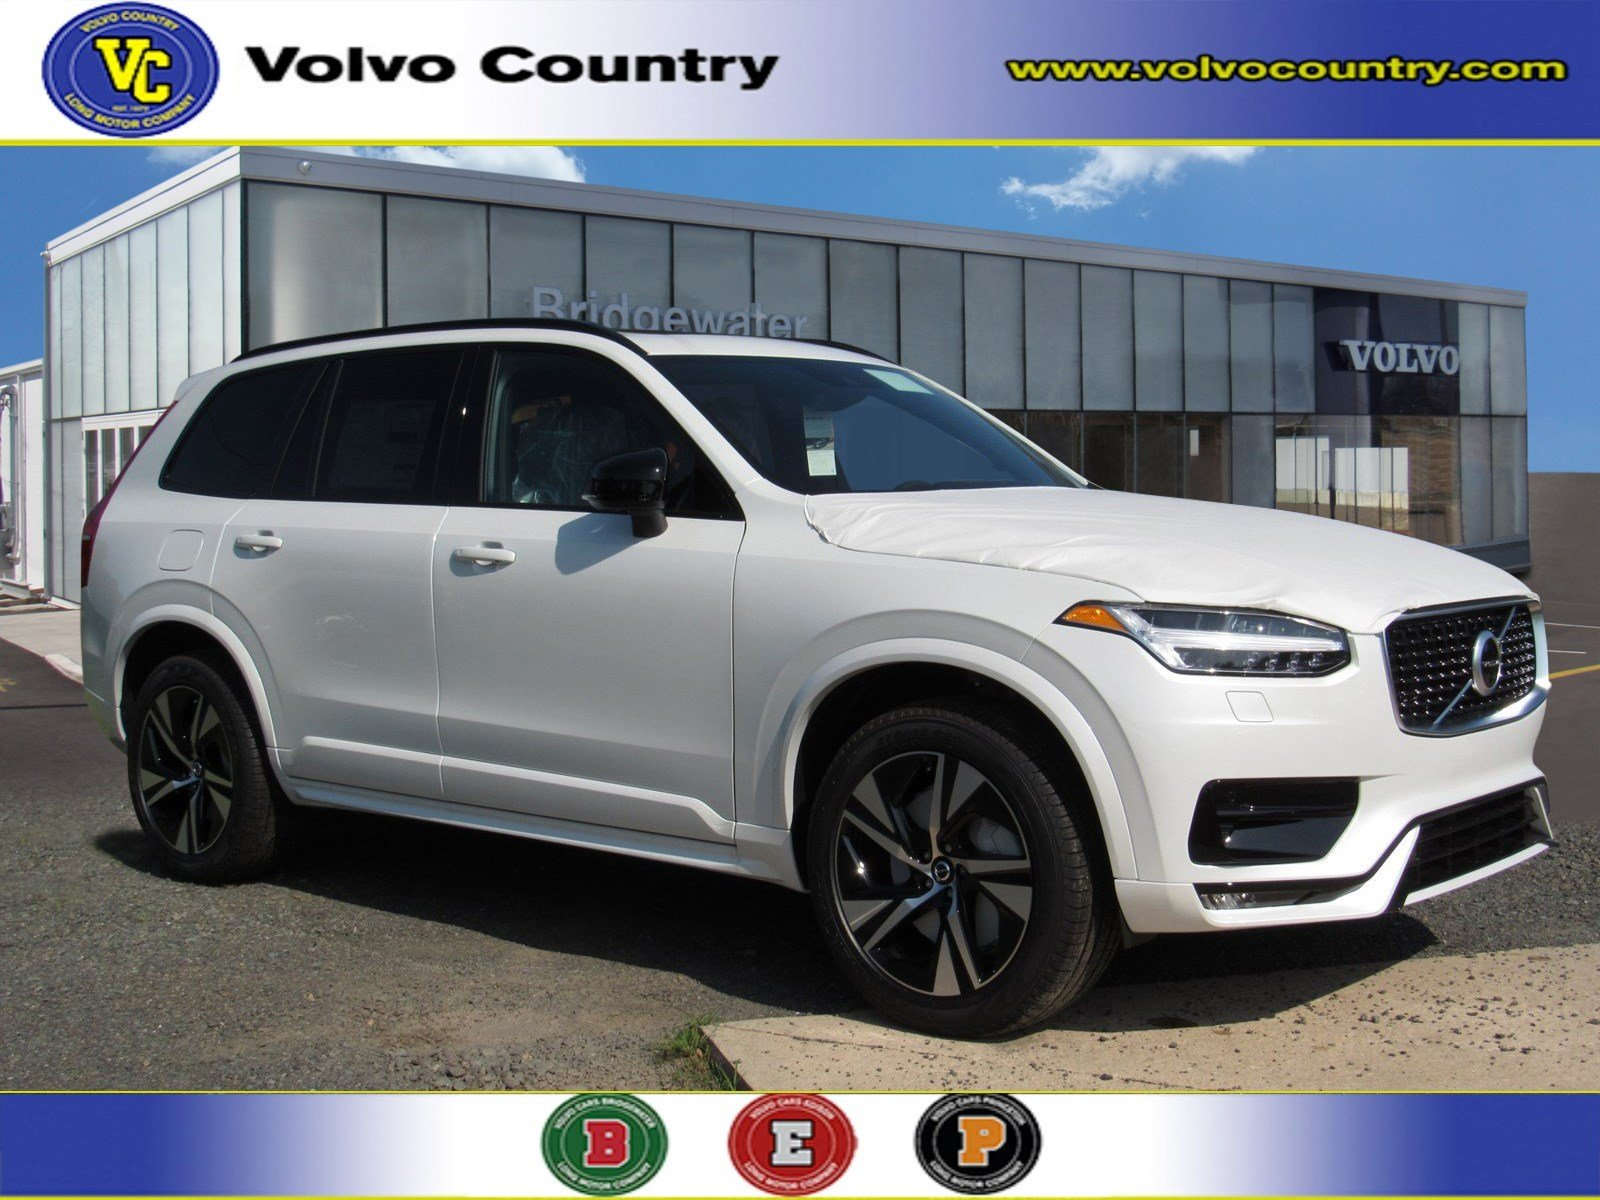 Volvo Xc90 R Design >> New 2020 Volvo Xc90 T6 R Design 7 Passenger For Sale Lease In Somerville Nj Vin Yv4a22pm8l1531235